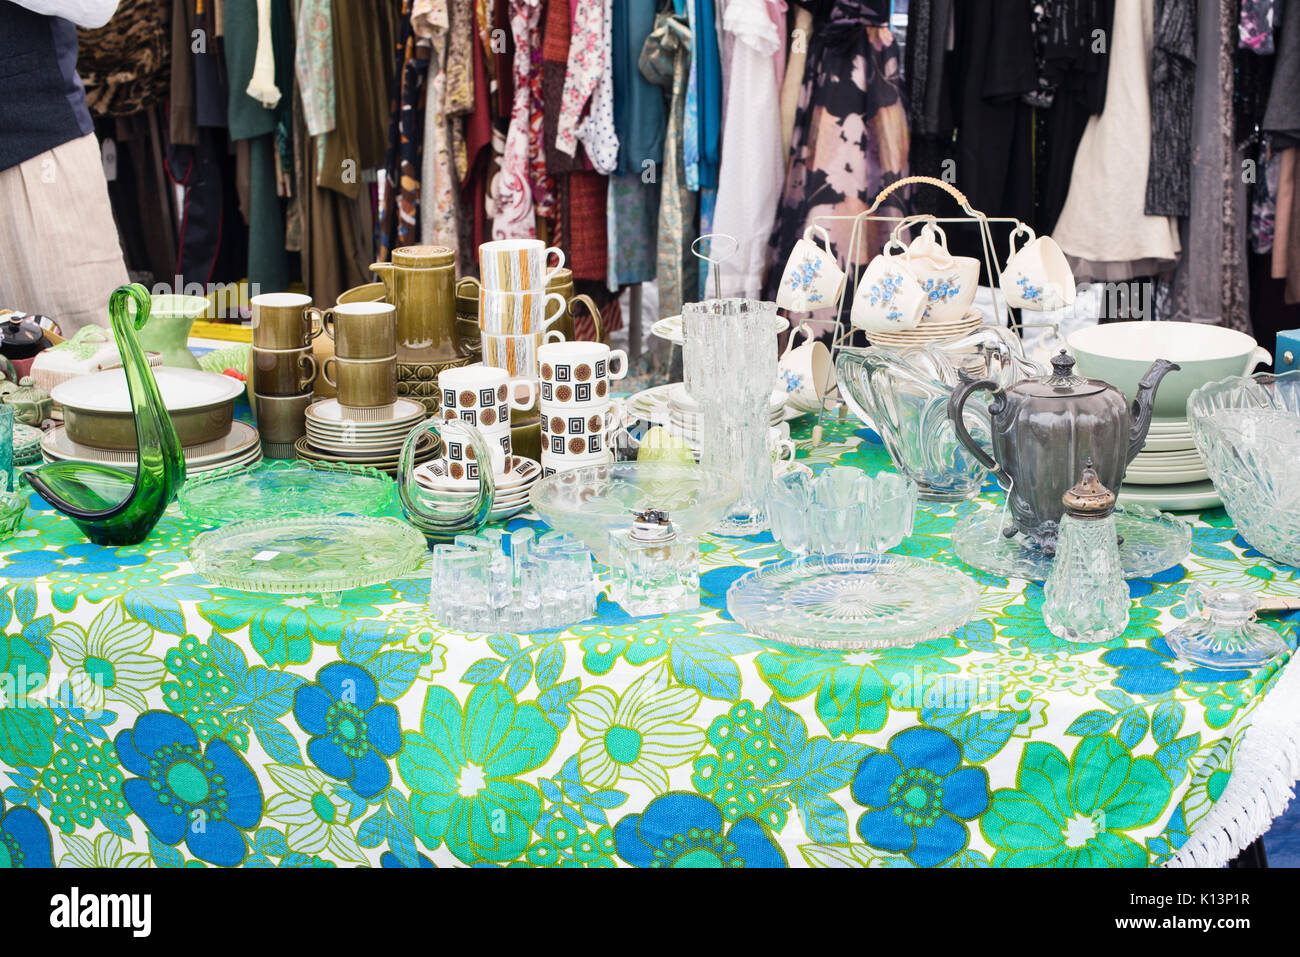 Old fashioned english tableware items and clothes on a rail at a vintage retro festival. UK - Stock Image